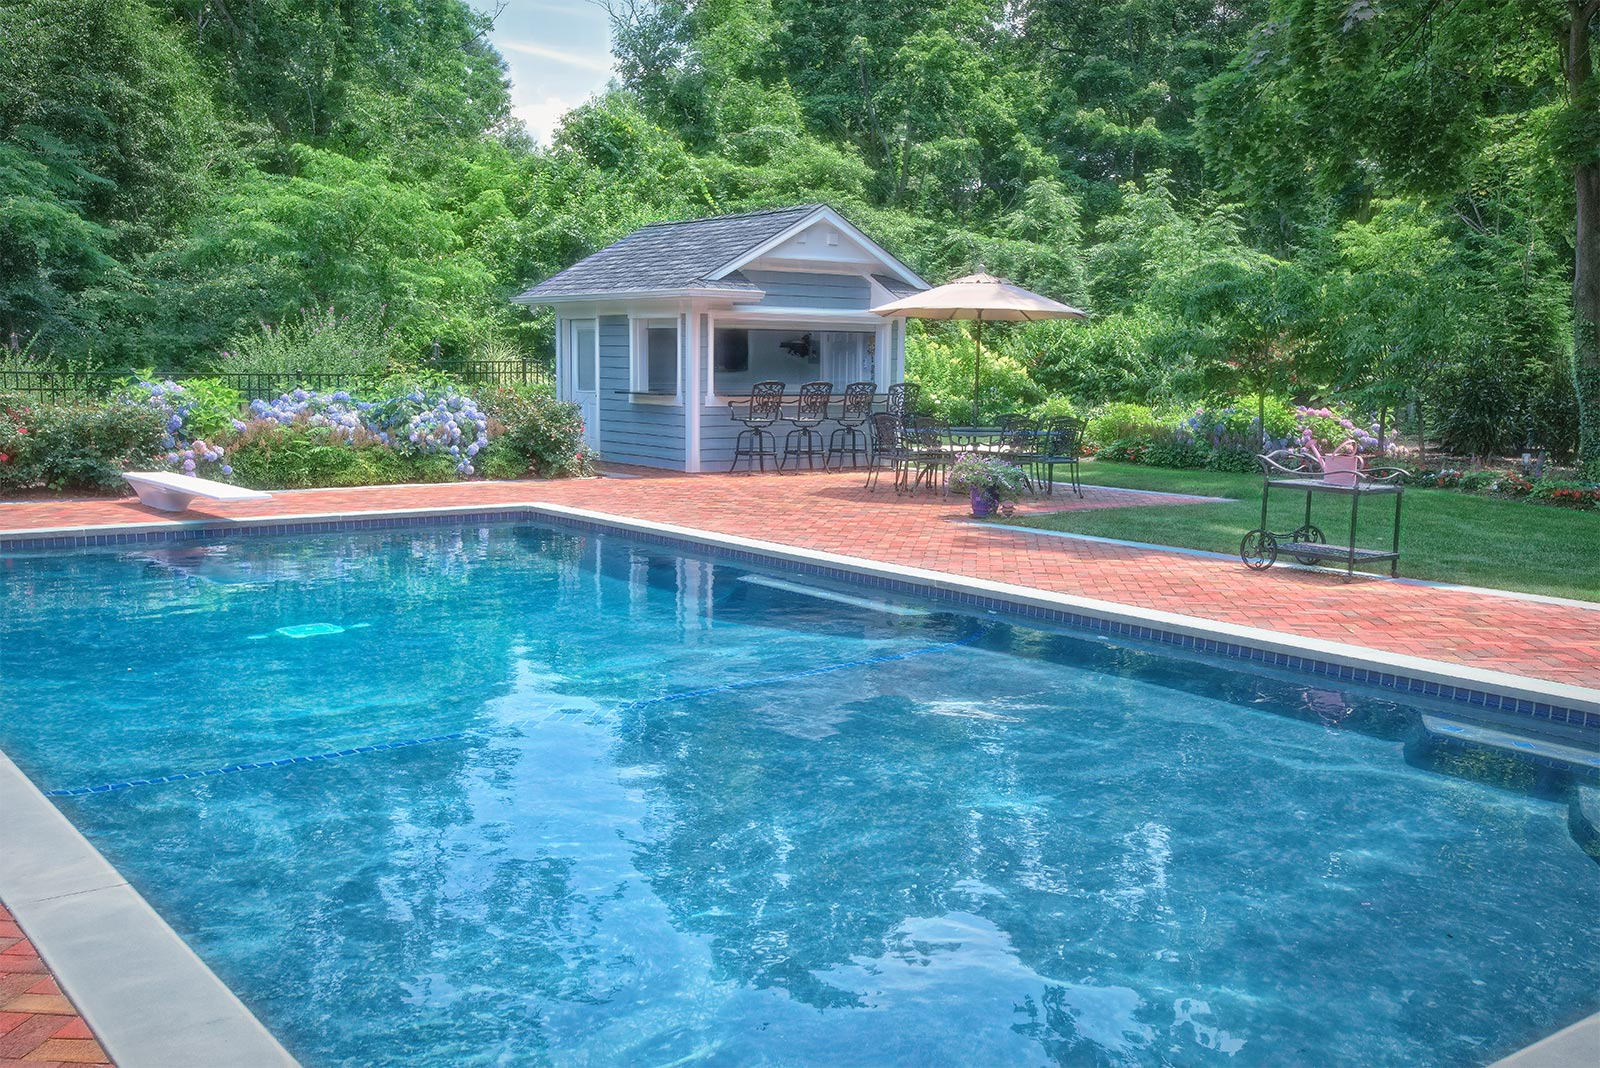 Residential Swimming Pool Renovation & Landscaping